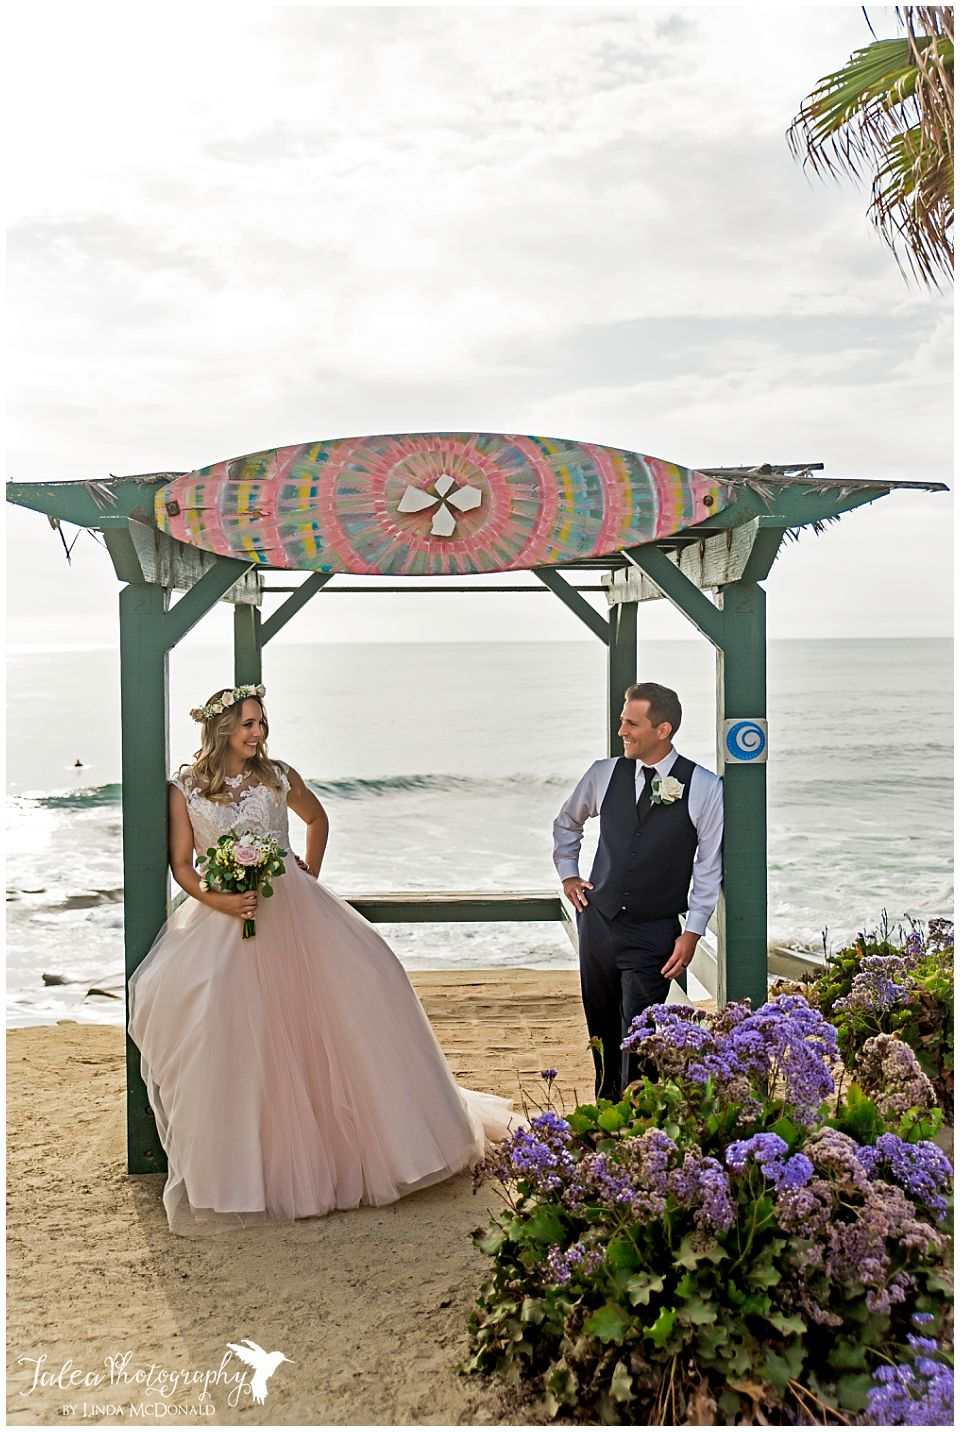 bride-groom-posing-under-beach-structure-la-jolla-wedding-bowl